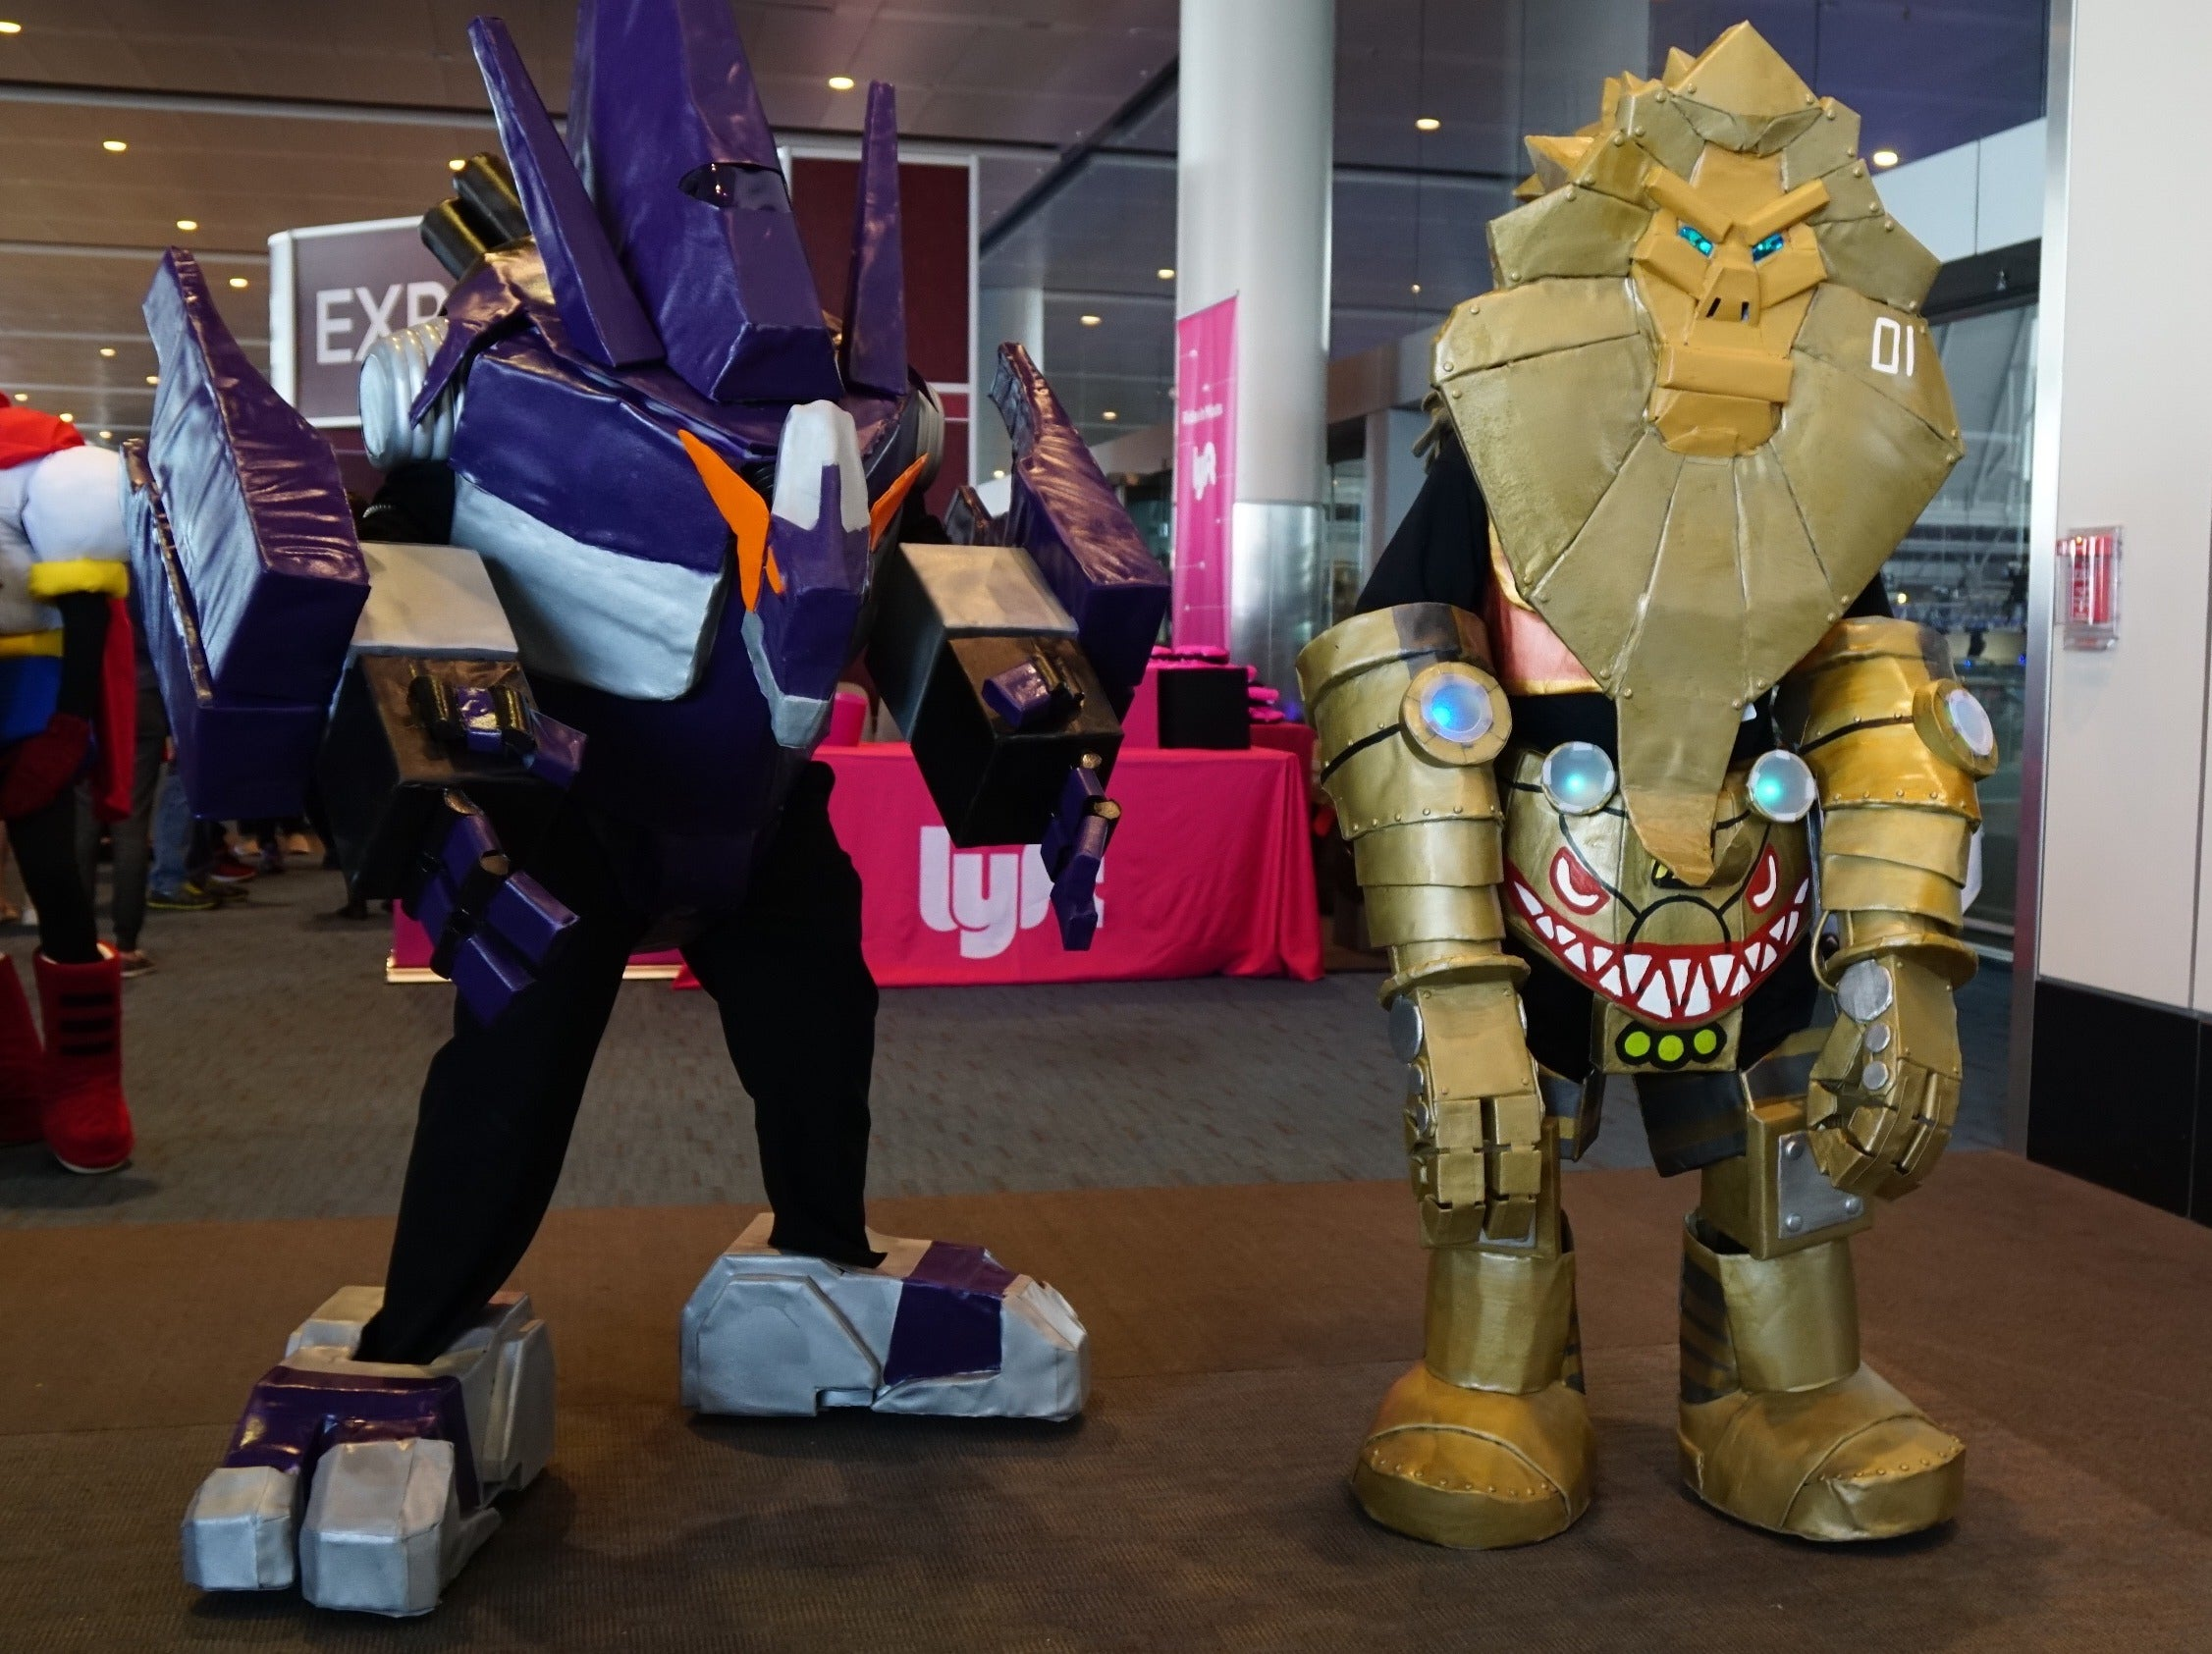 That's A Lot Of League of Legends Cosplay